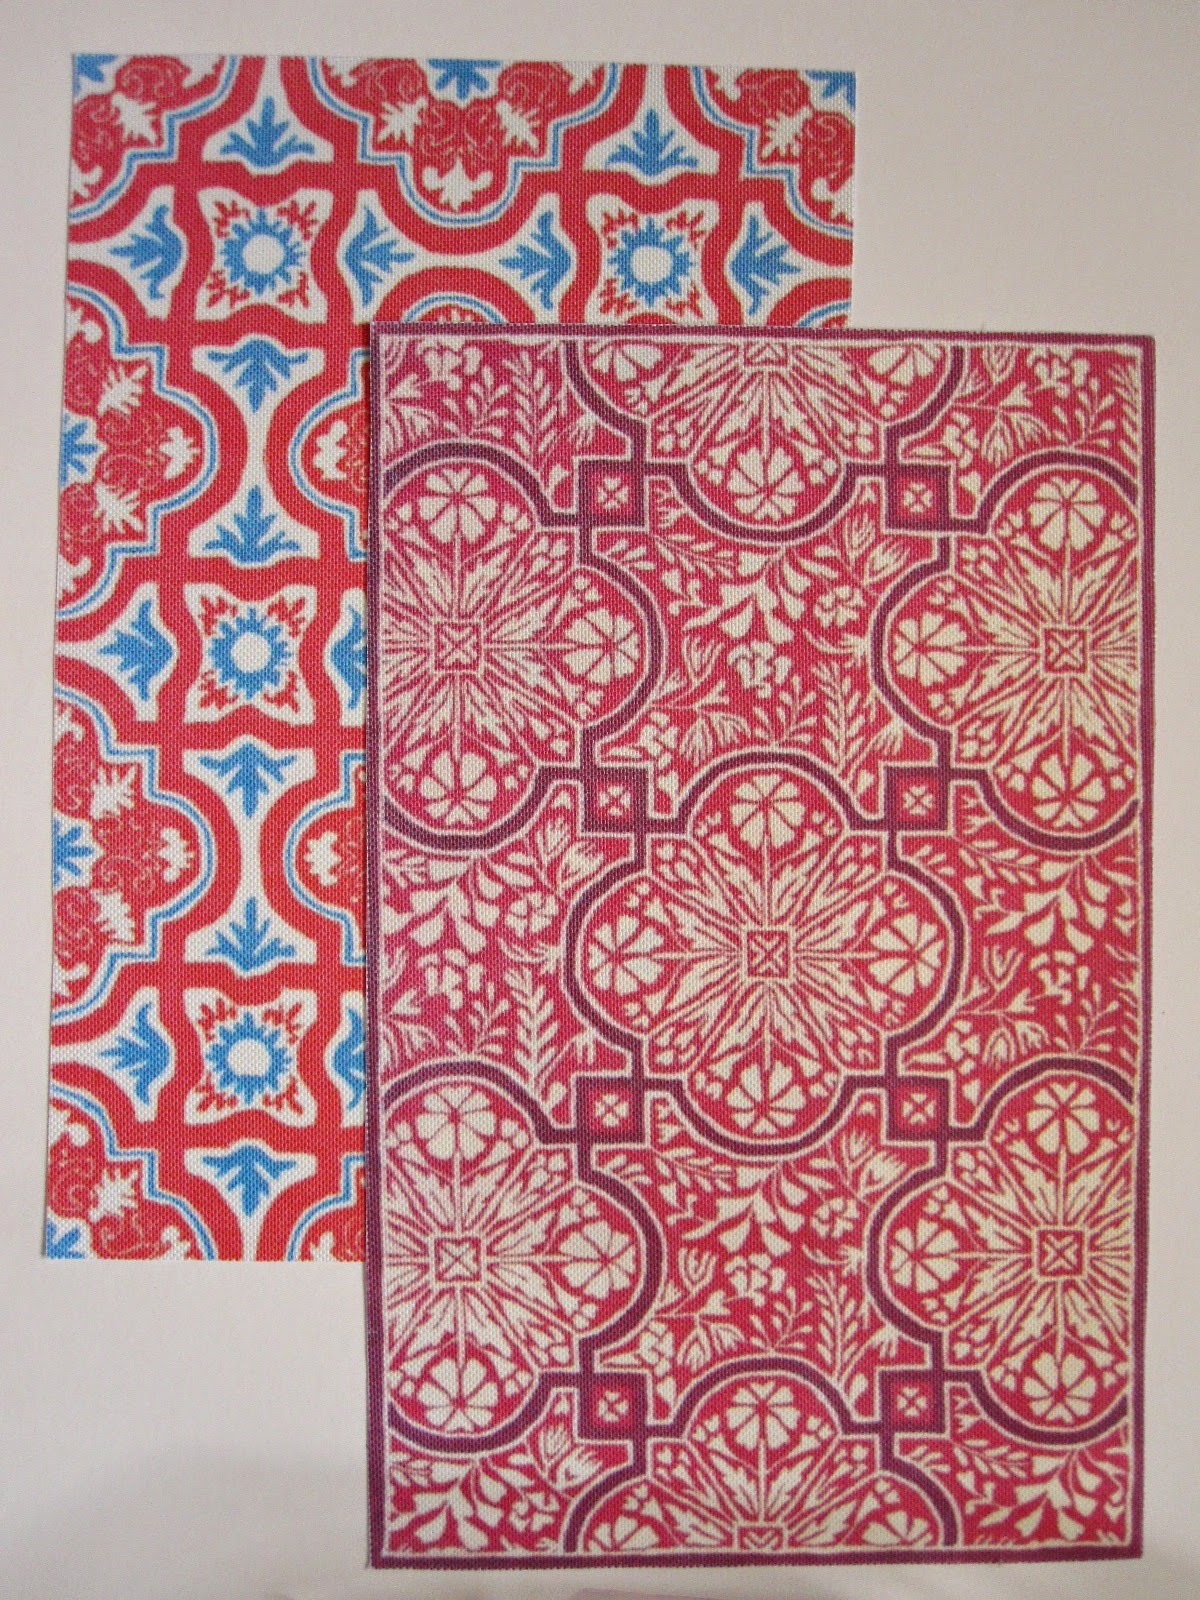 Two large miniature rugs, printed on canvas paper.